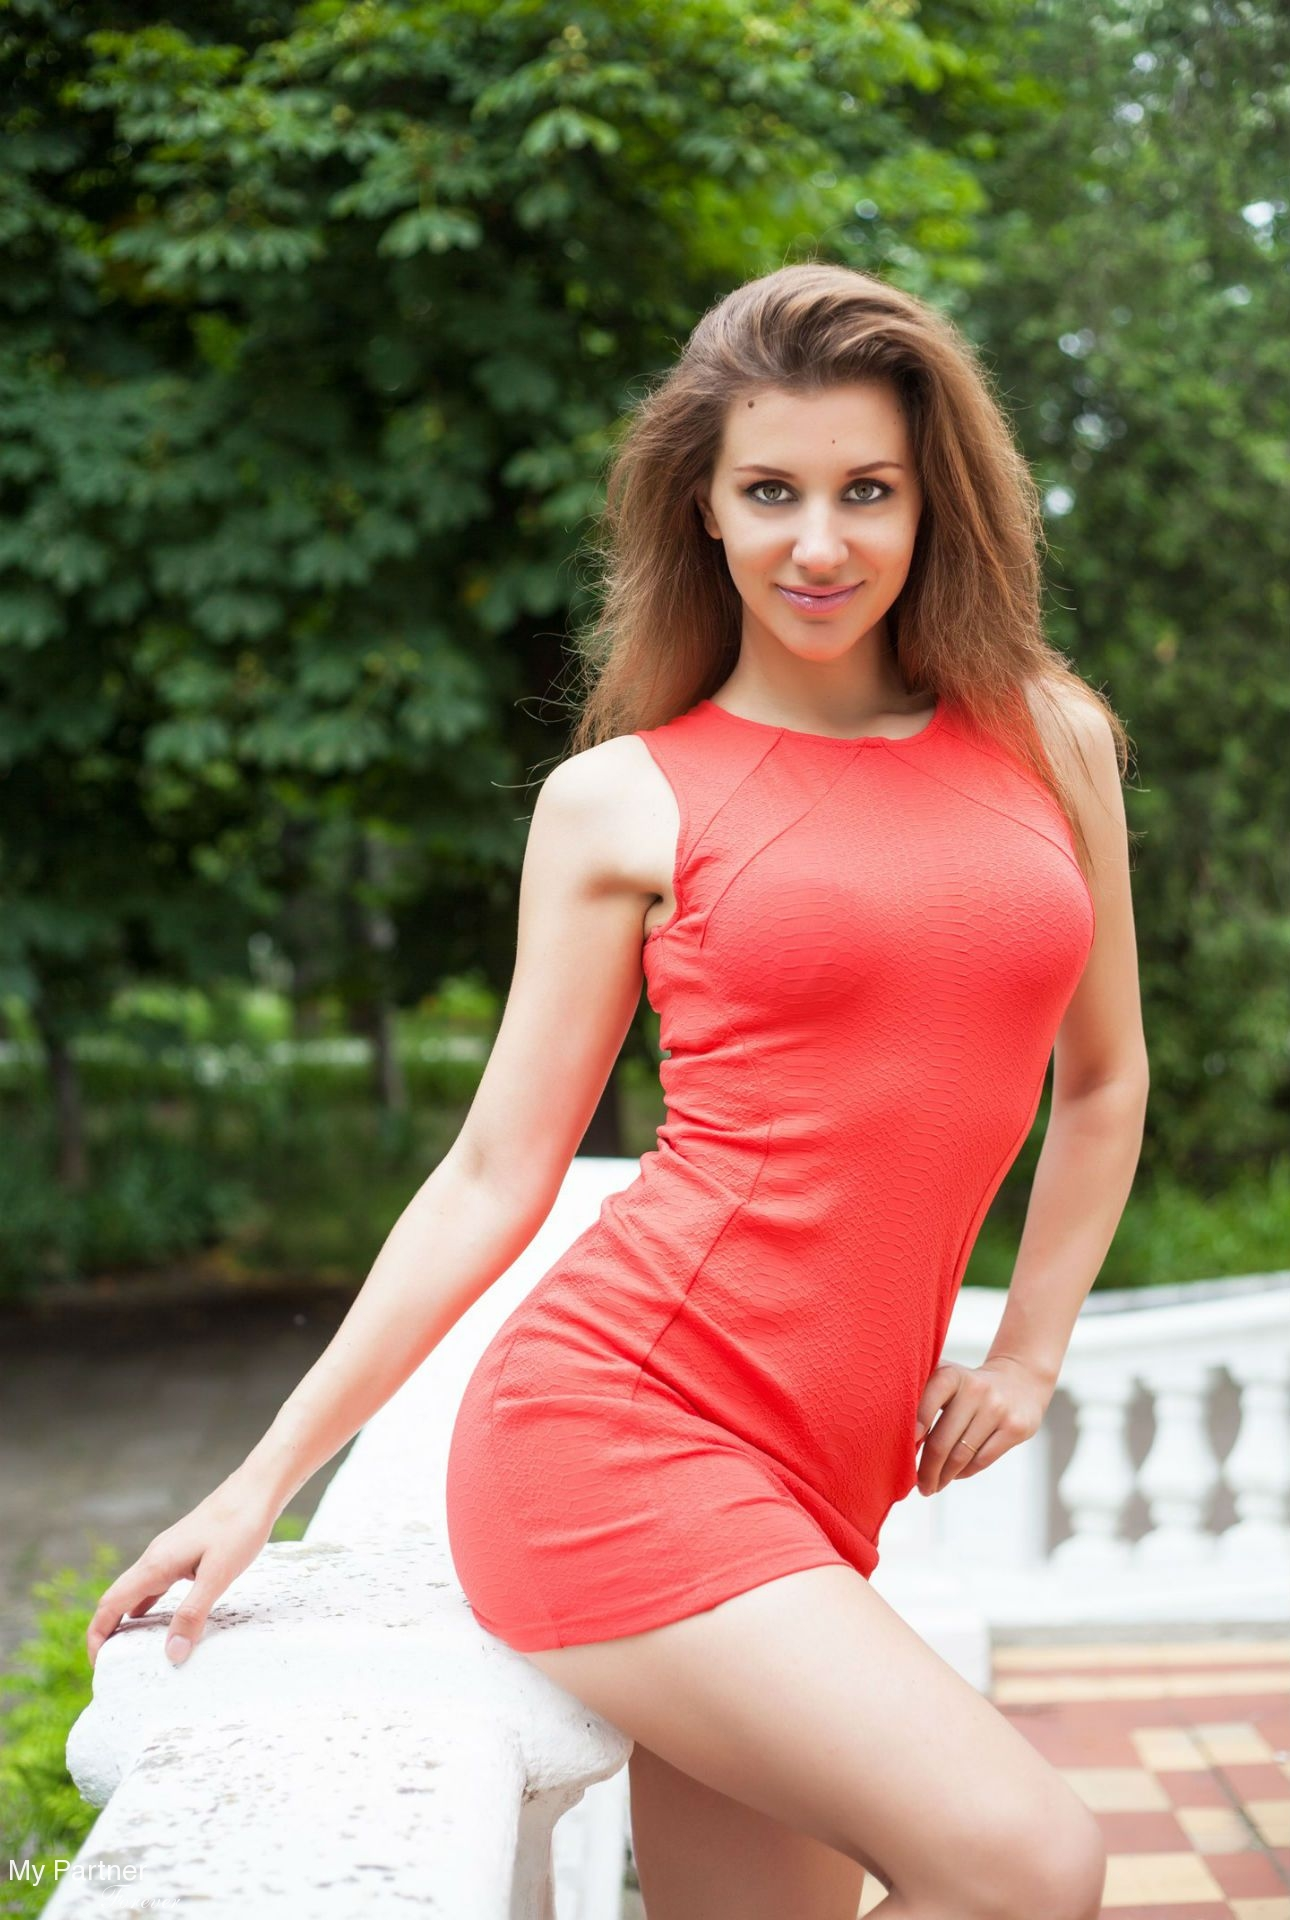 ukraine dating services